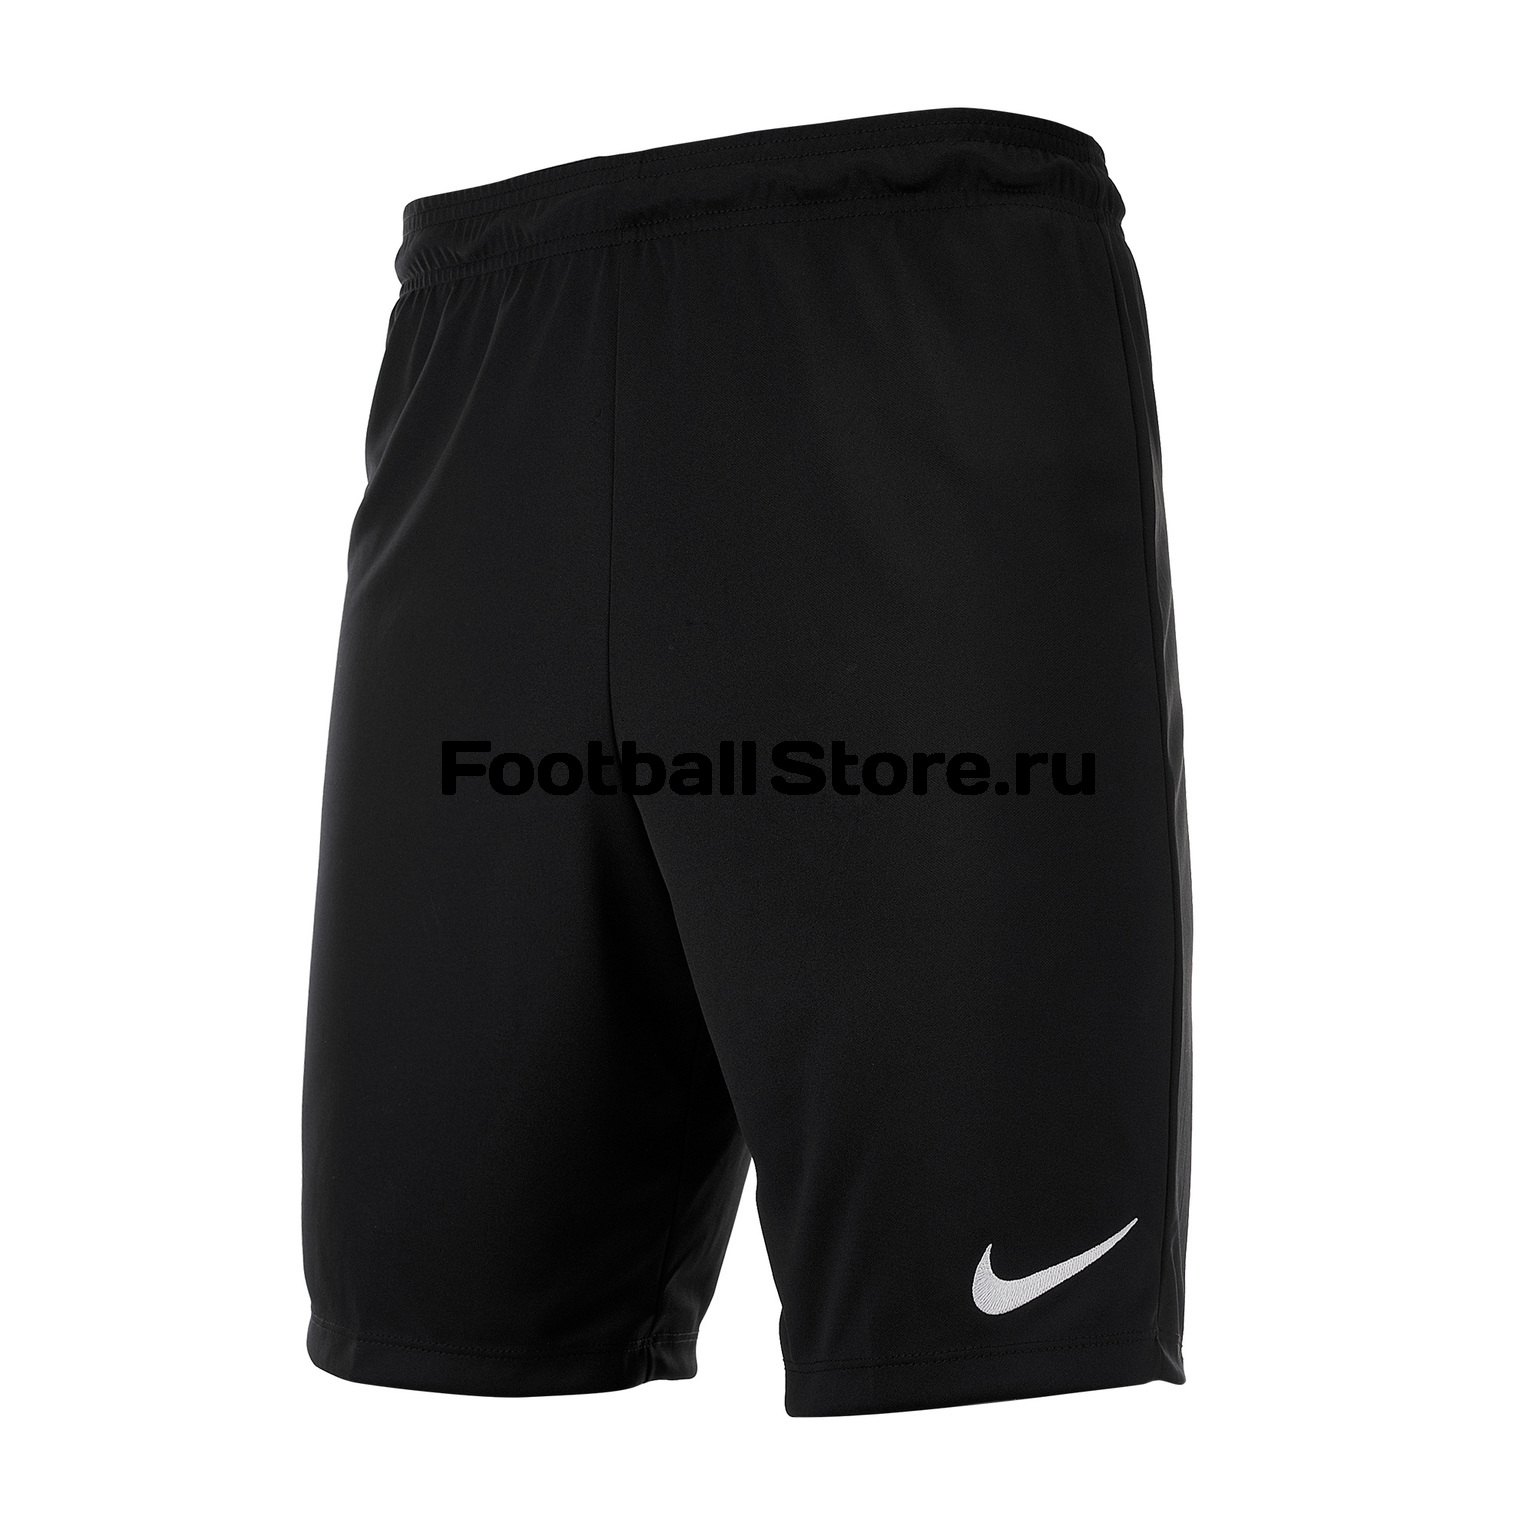 Шорты Nike Park II KNIT Short NB 725887-010 шорты nike игровые шорты nike league knit short nb 725881 702